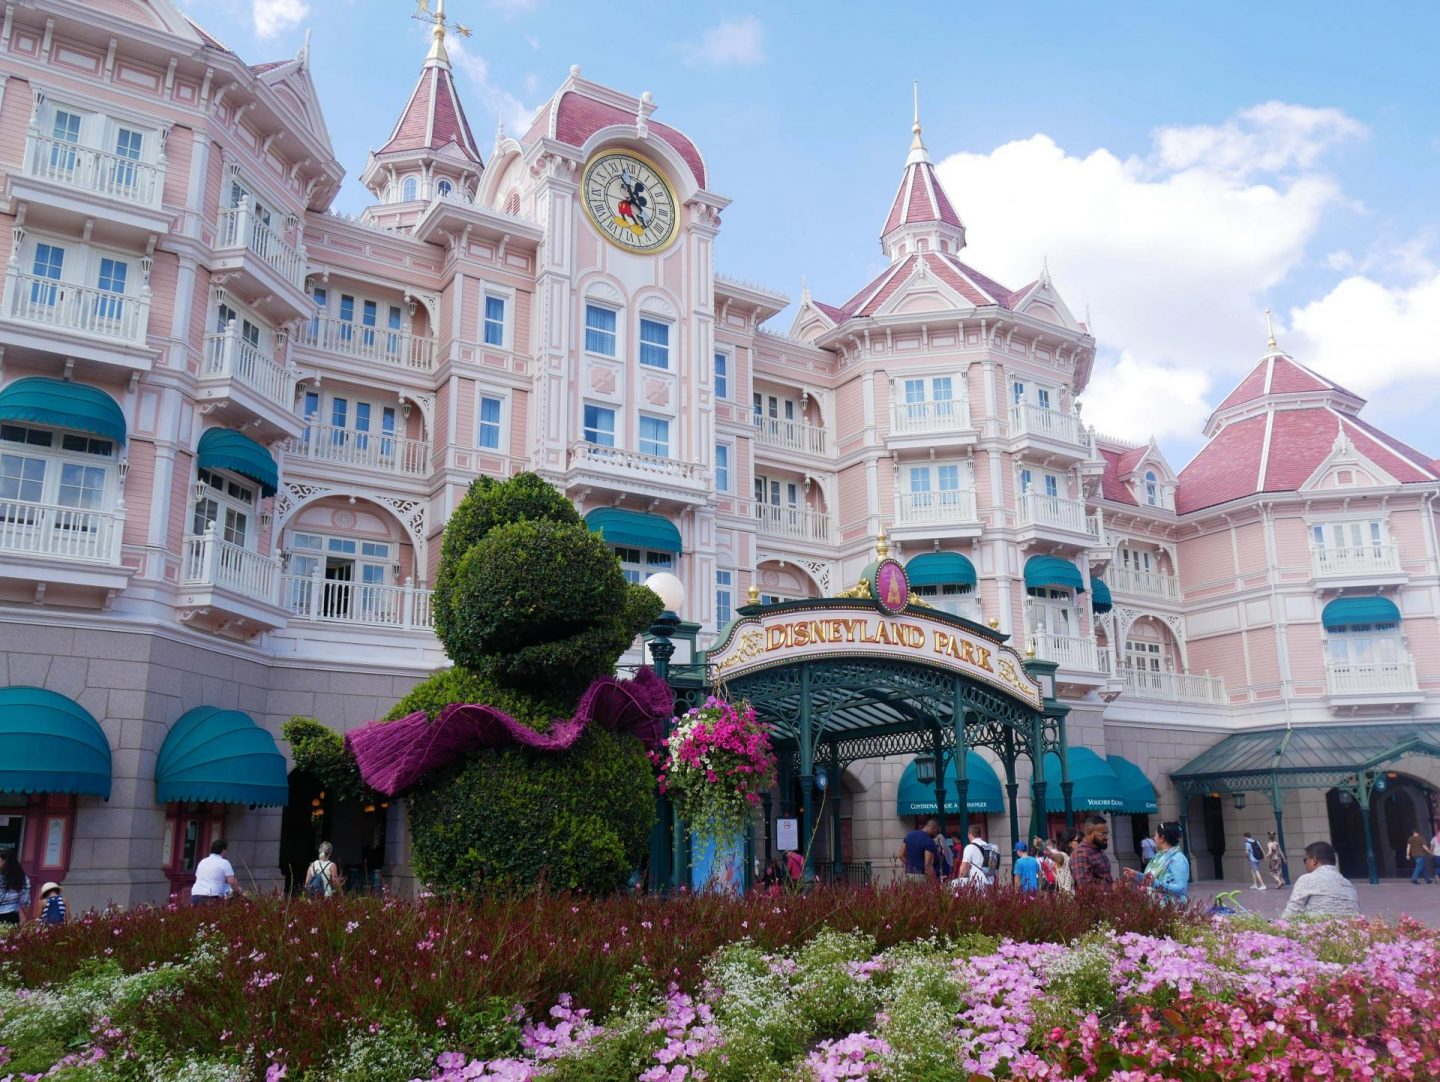 disneyland-paris-my-22nd-birthday-trip-rachel-nicole-uk-travel-disney-blogger